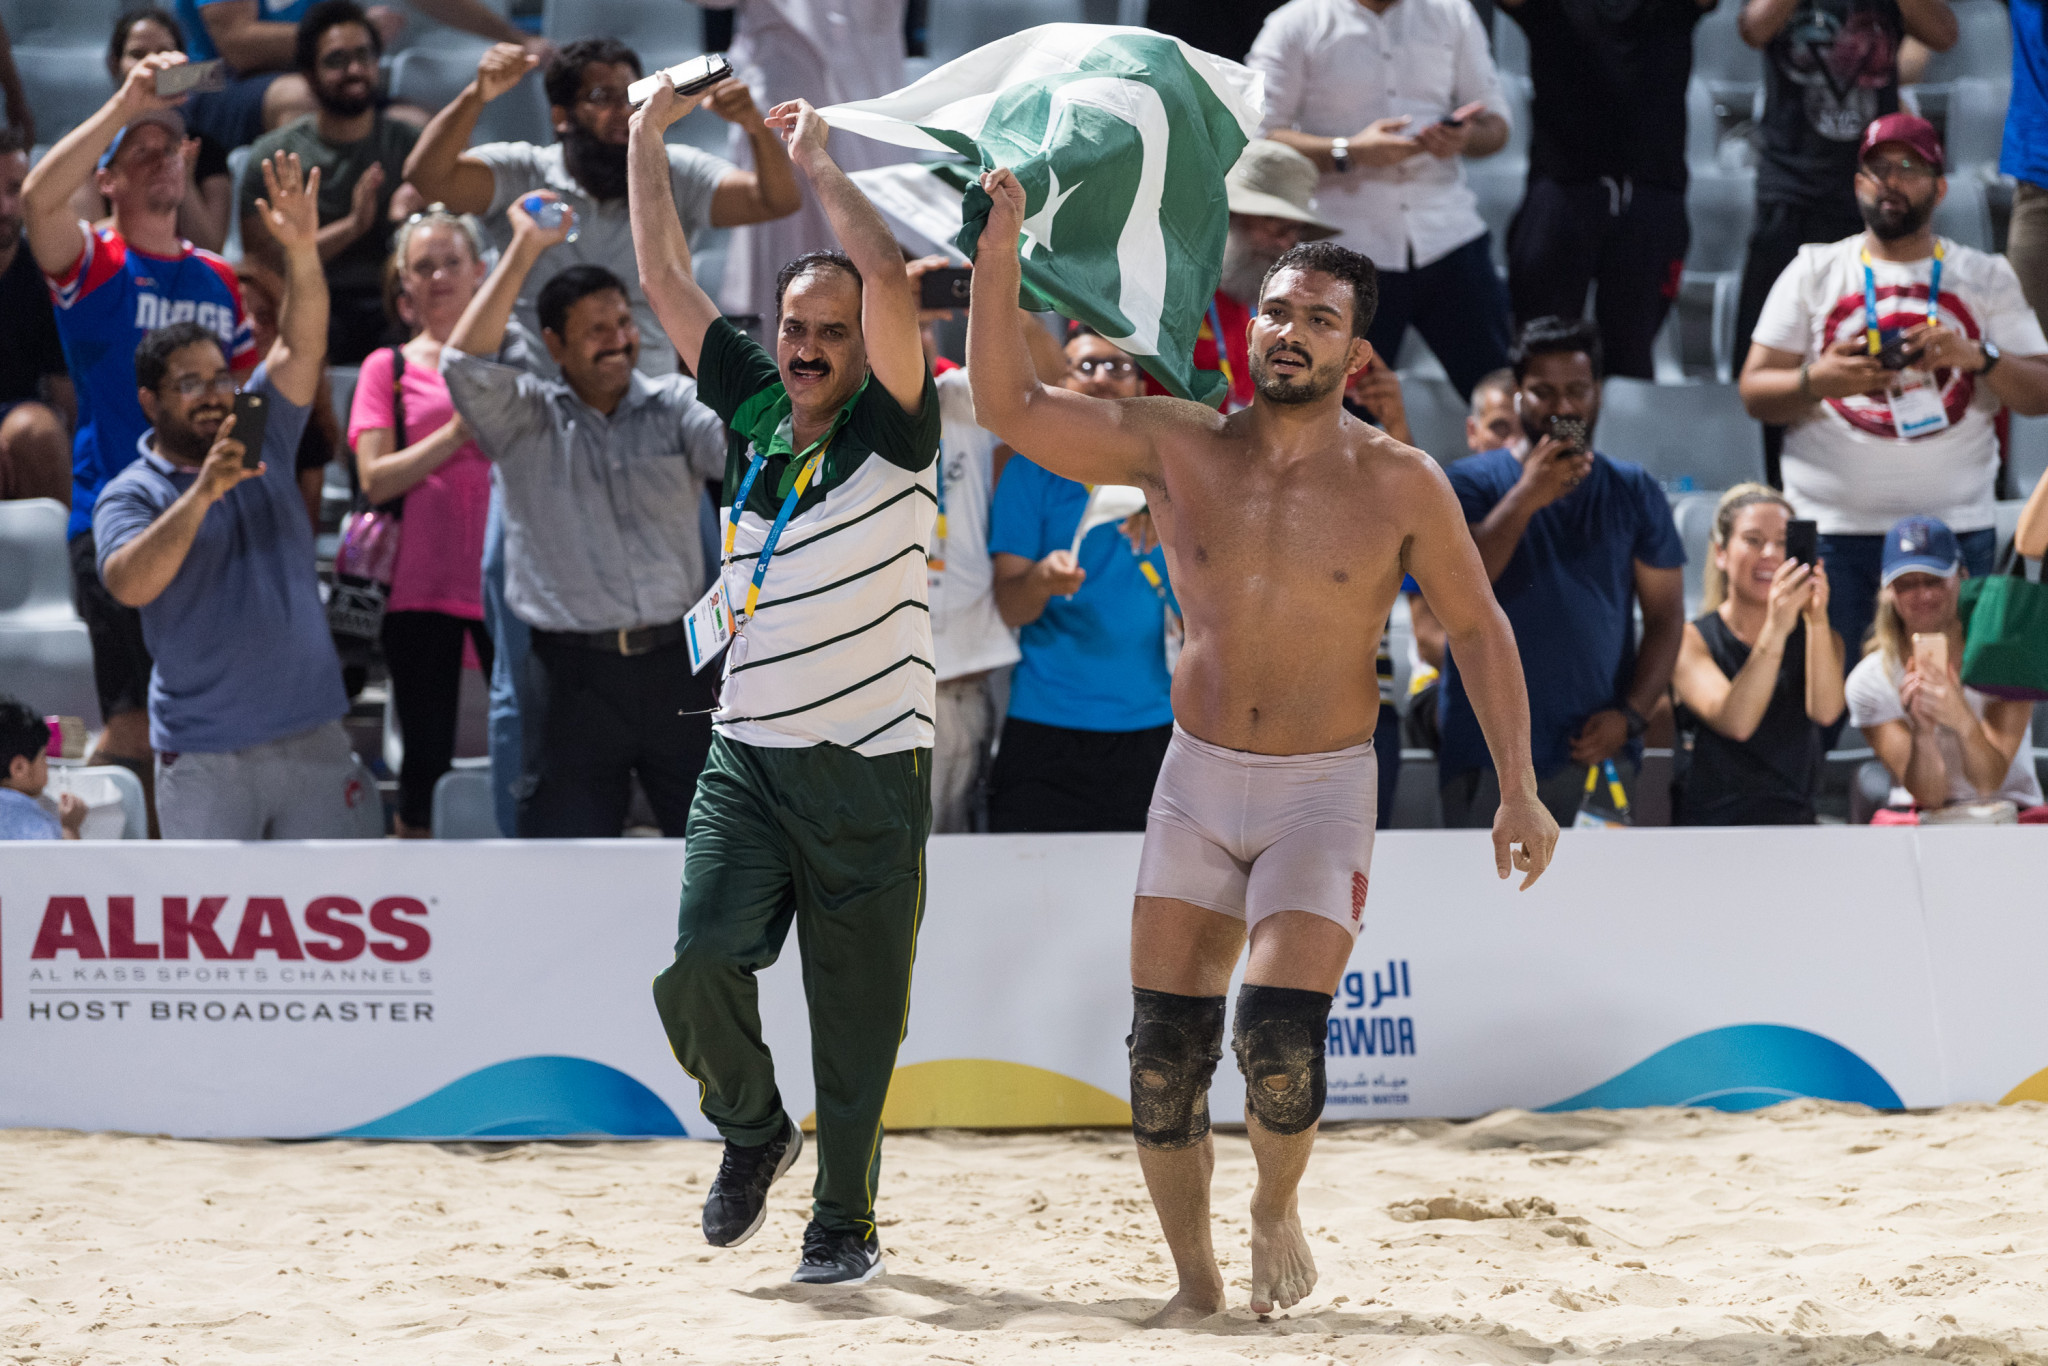 Inam succeeds in solo mission for Pakistan in ANOC World Beach Games wrestling event